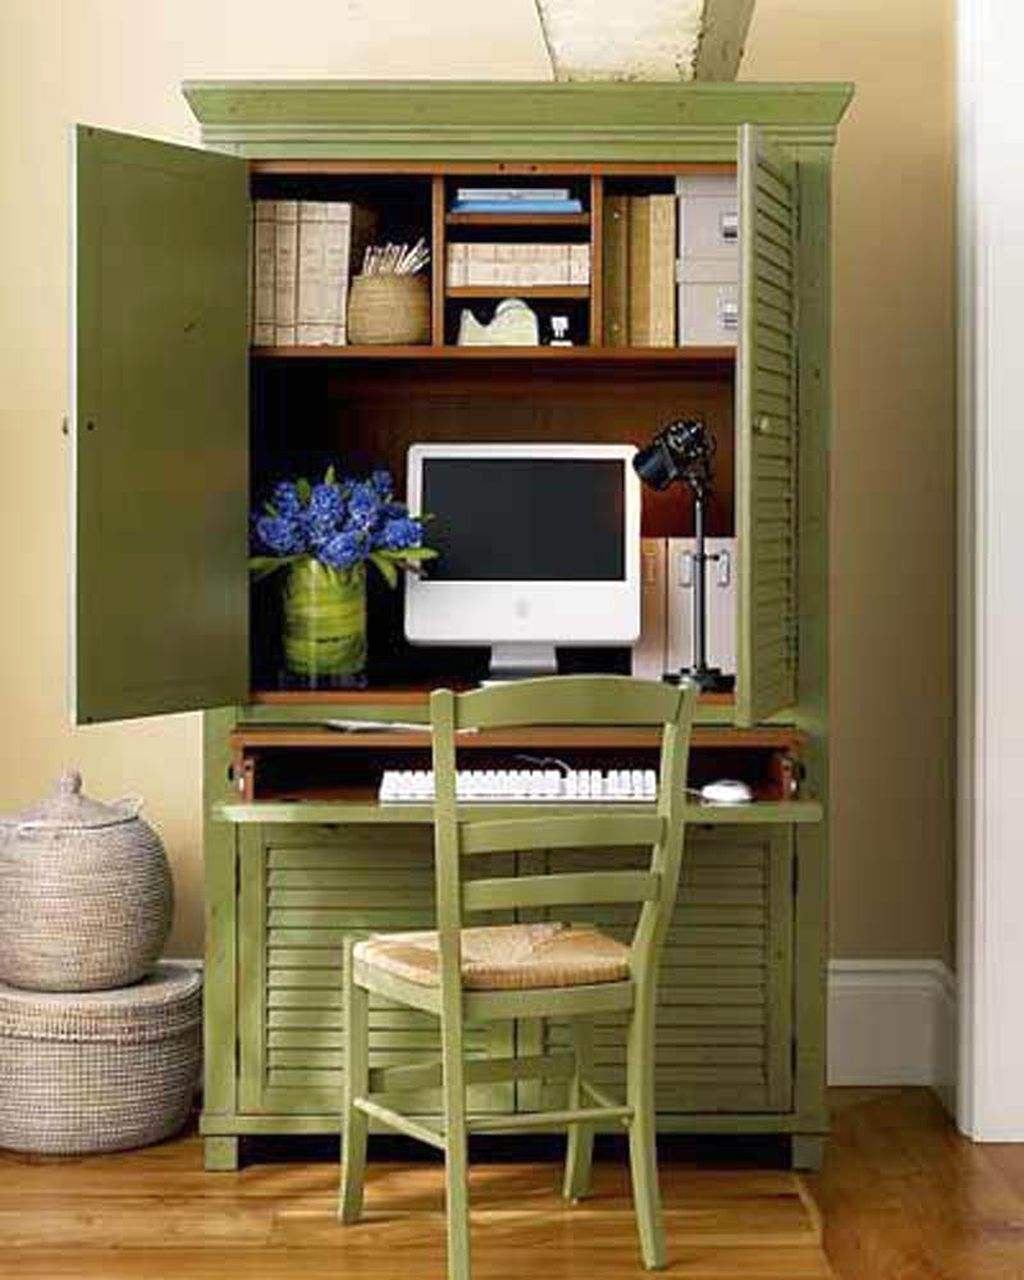 Green cupboard home office design ideas for small spaces for Small home design ideas video